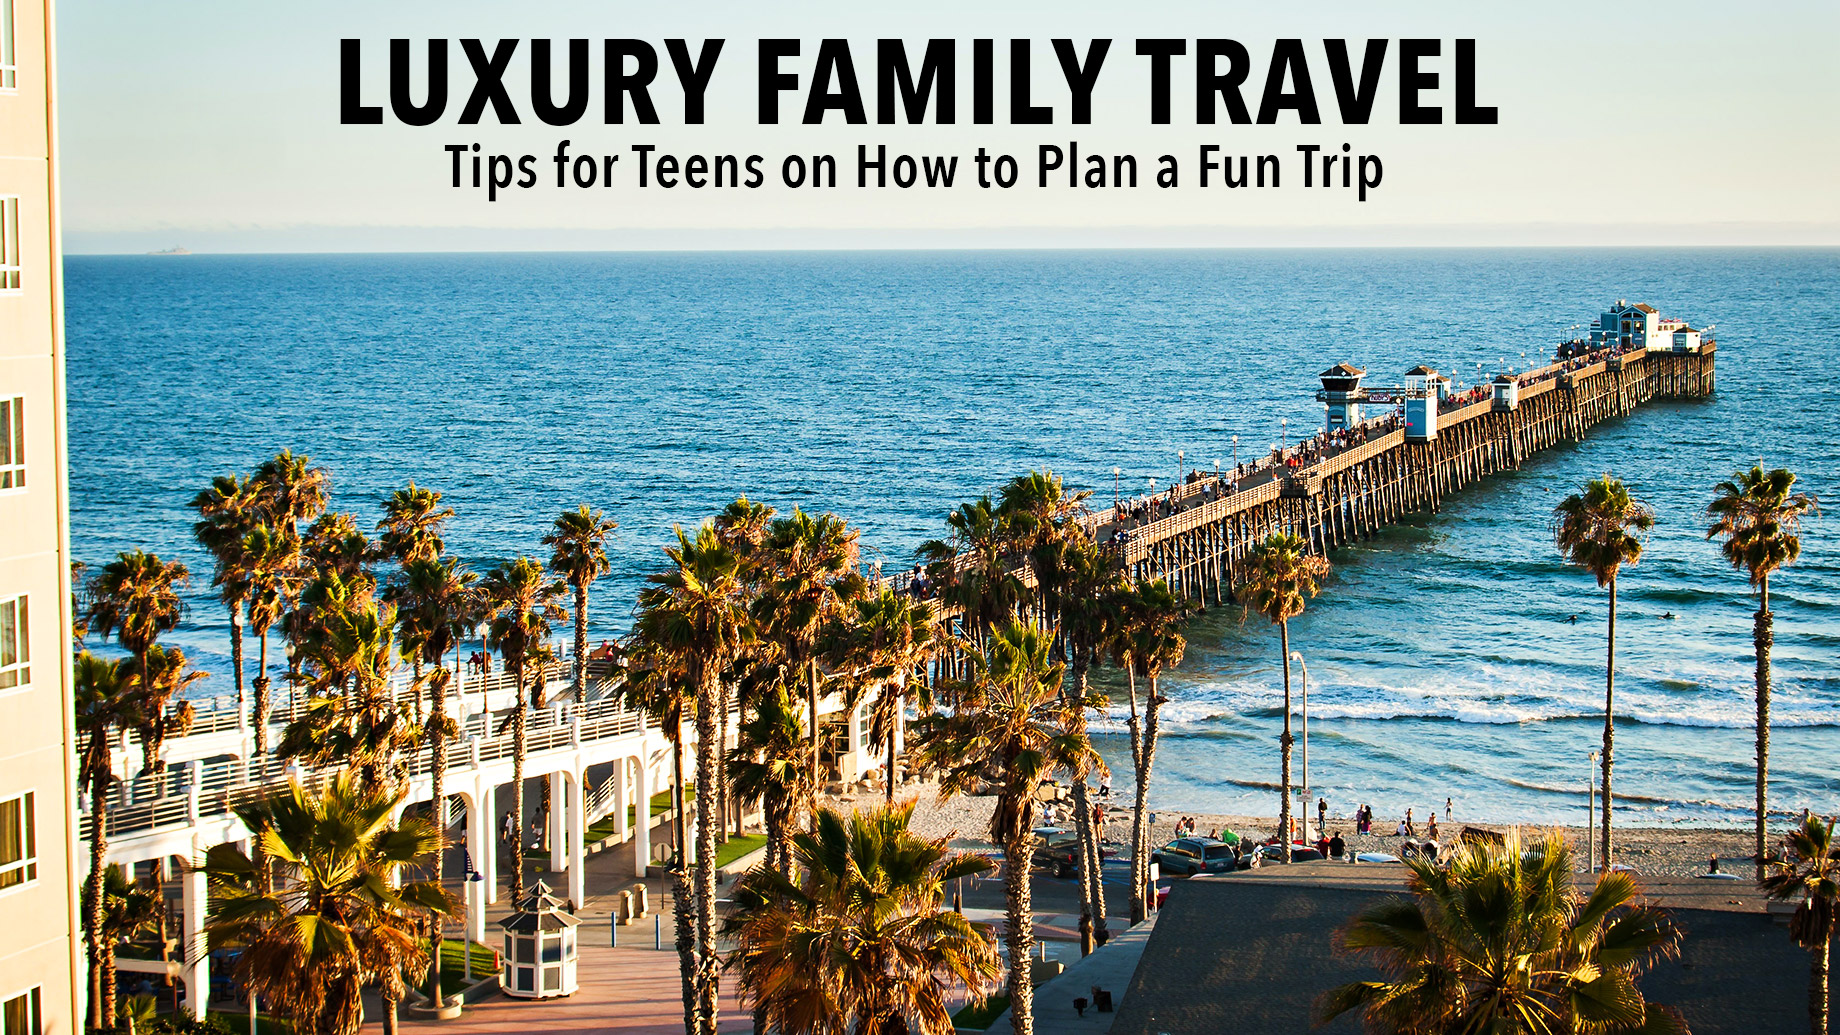 Luxury Family Travel - Tips for Teens on How to Plan a Fun Trip